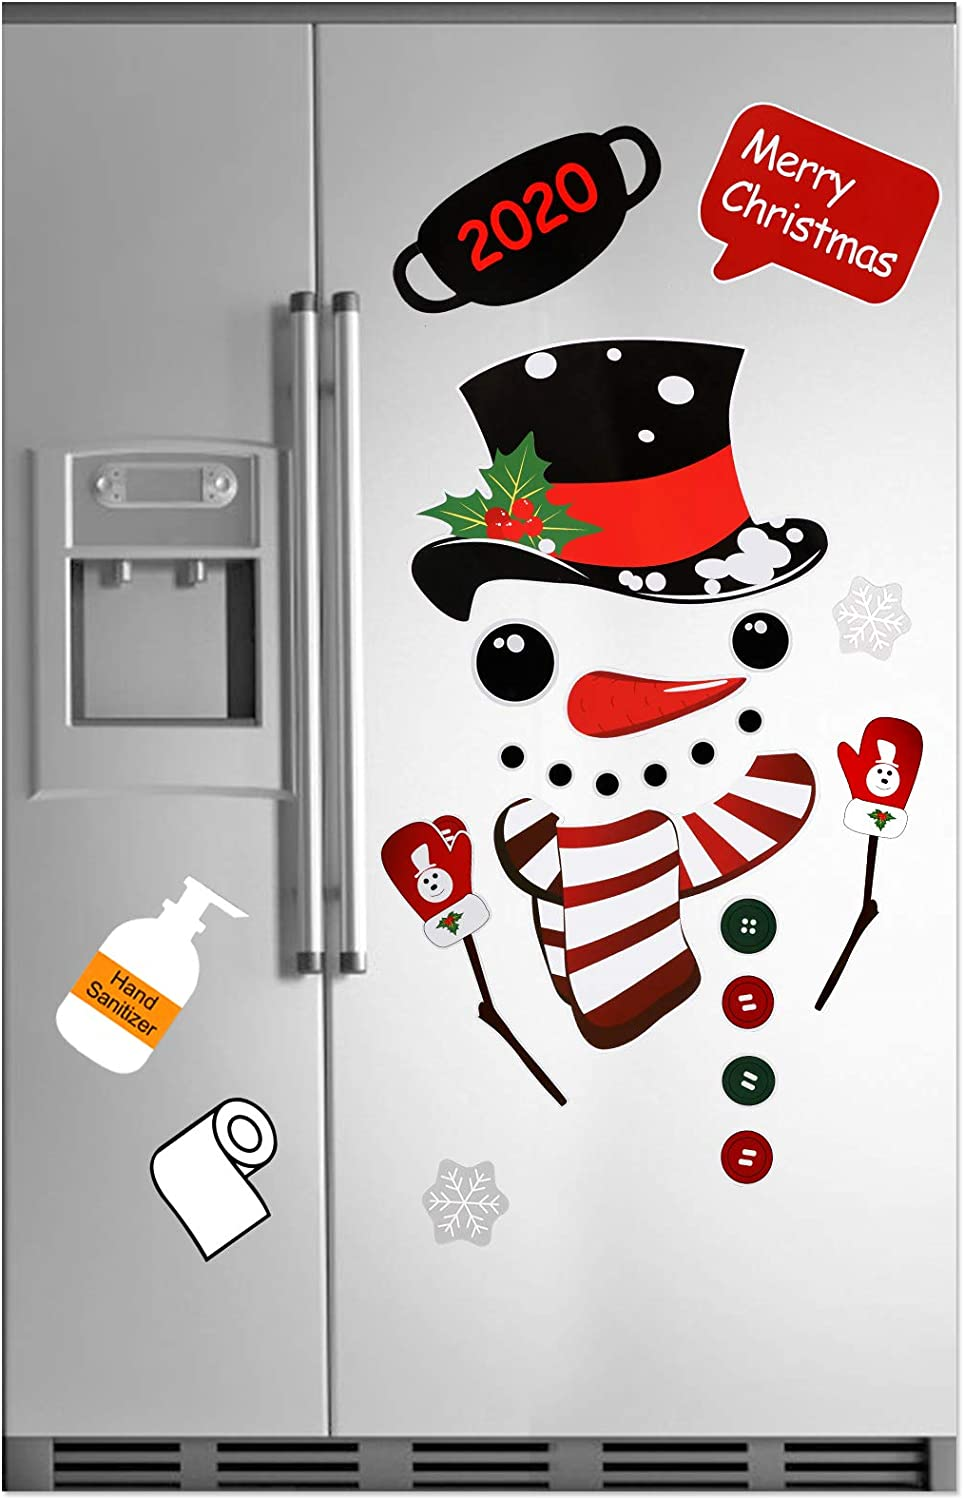 Christmas Snowman Refrigerator Magnets Decorations Set, Cute Funny Fridge Magnet Stickers Xmas Holiday Garage Fridge Kitchen Cute Funny Decor